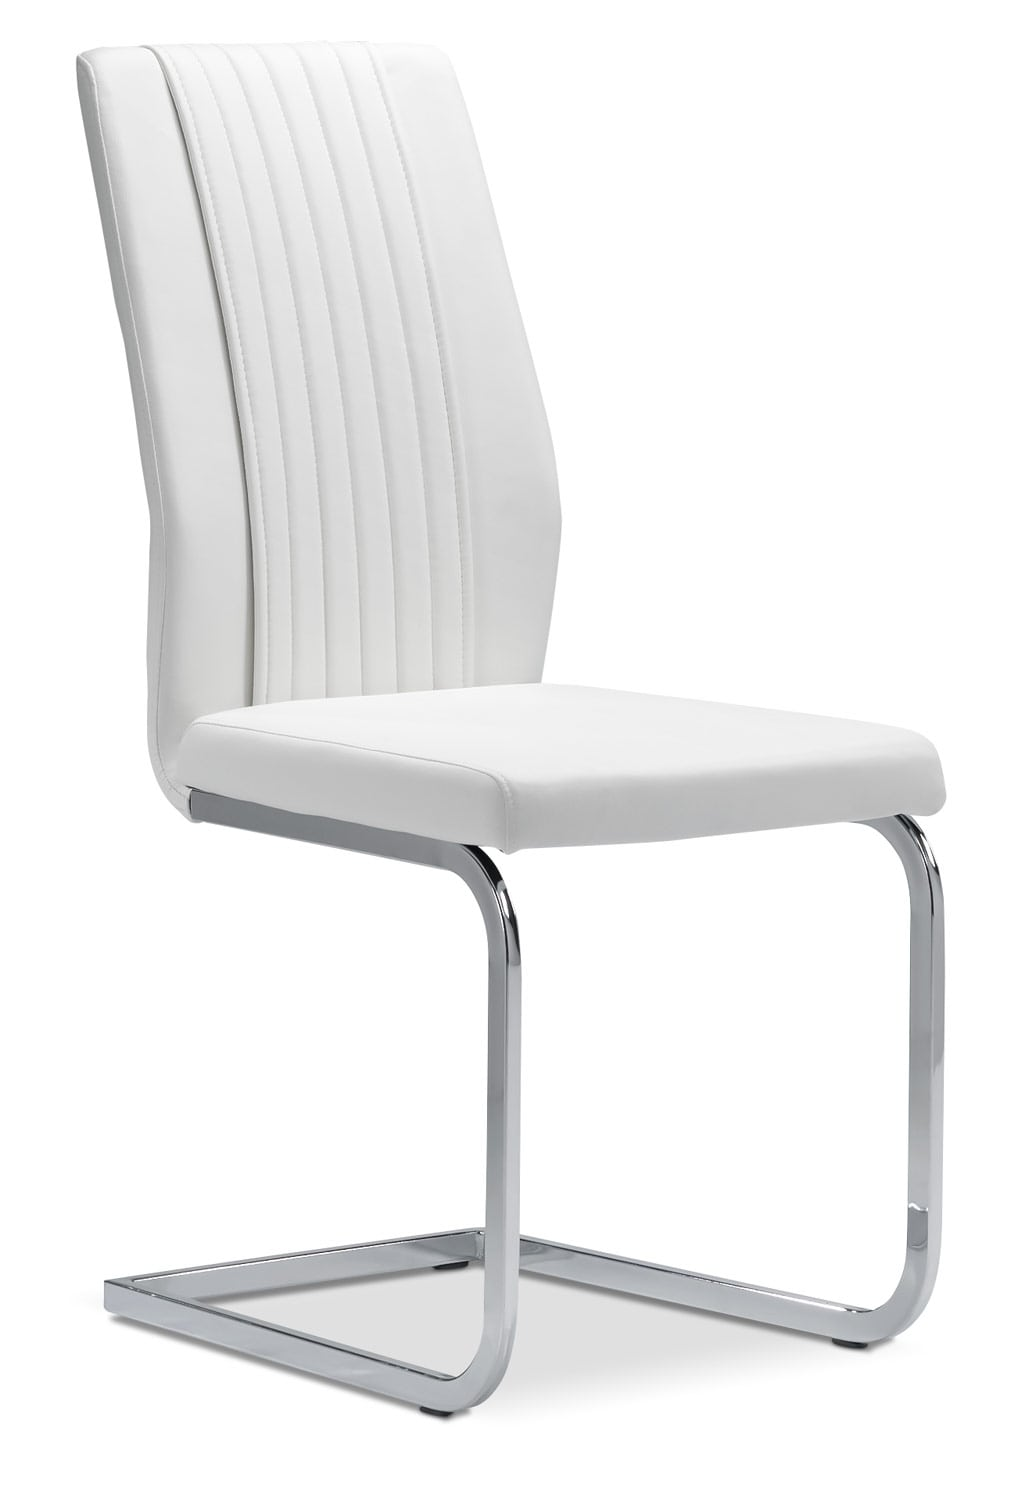 Casual Dining Room Furniture - Fresno Side Chair - White